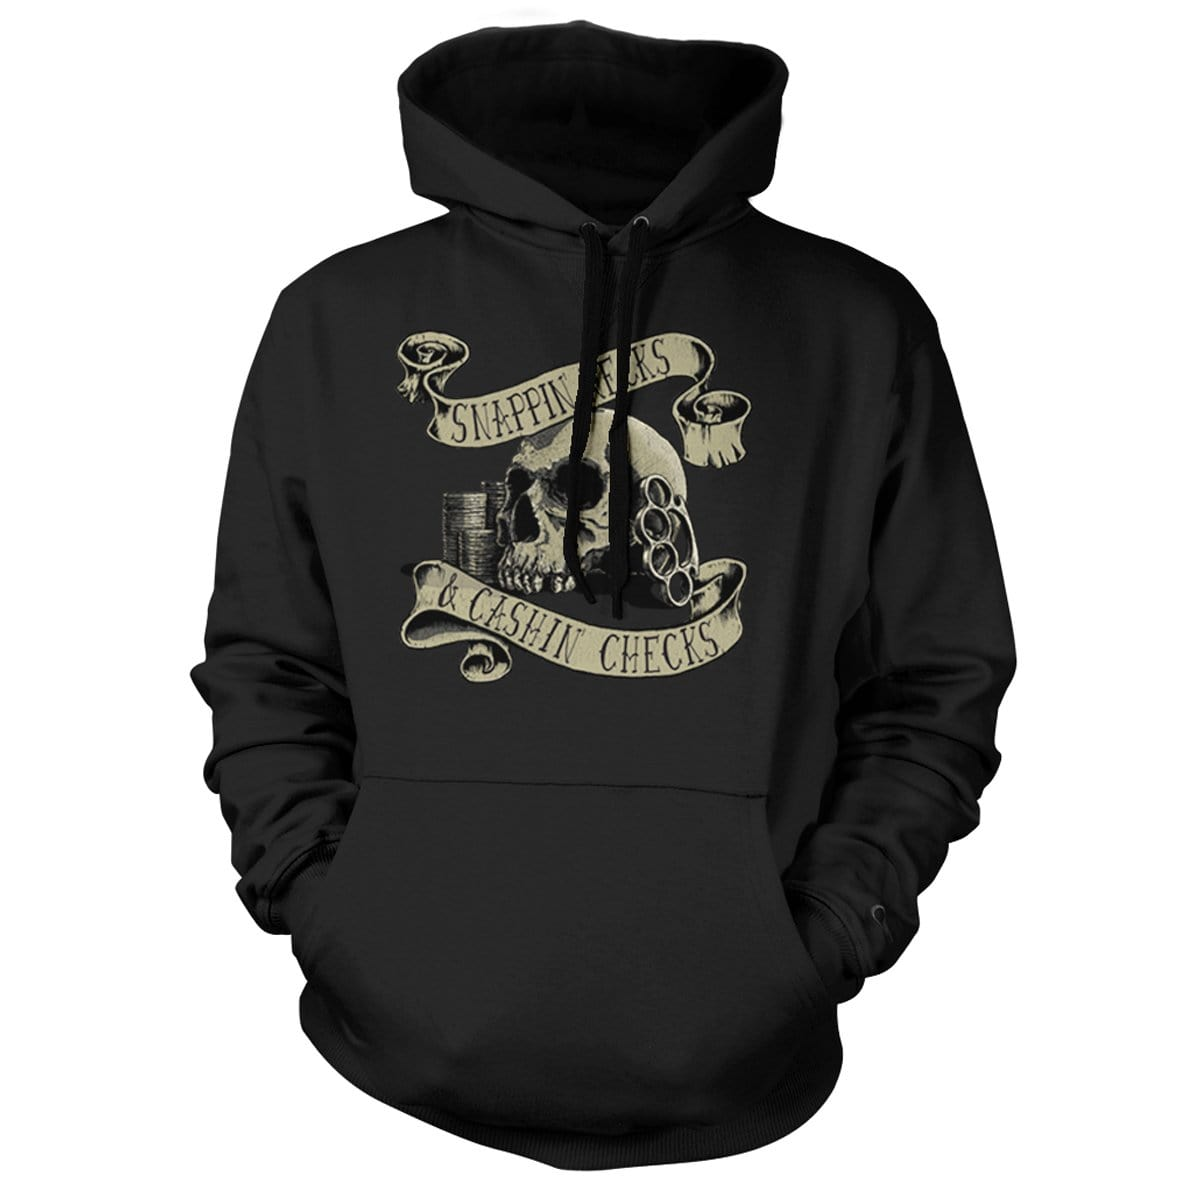 Snappin Necks Hoodie - Black - Hoodies - Pipe Hitters Union